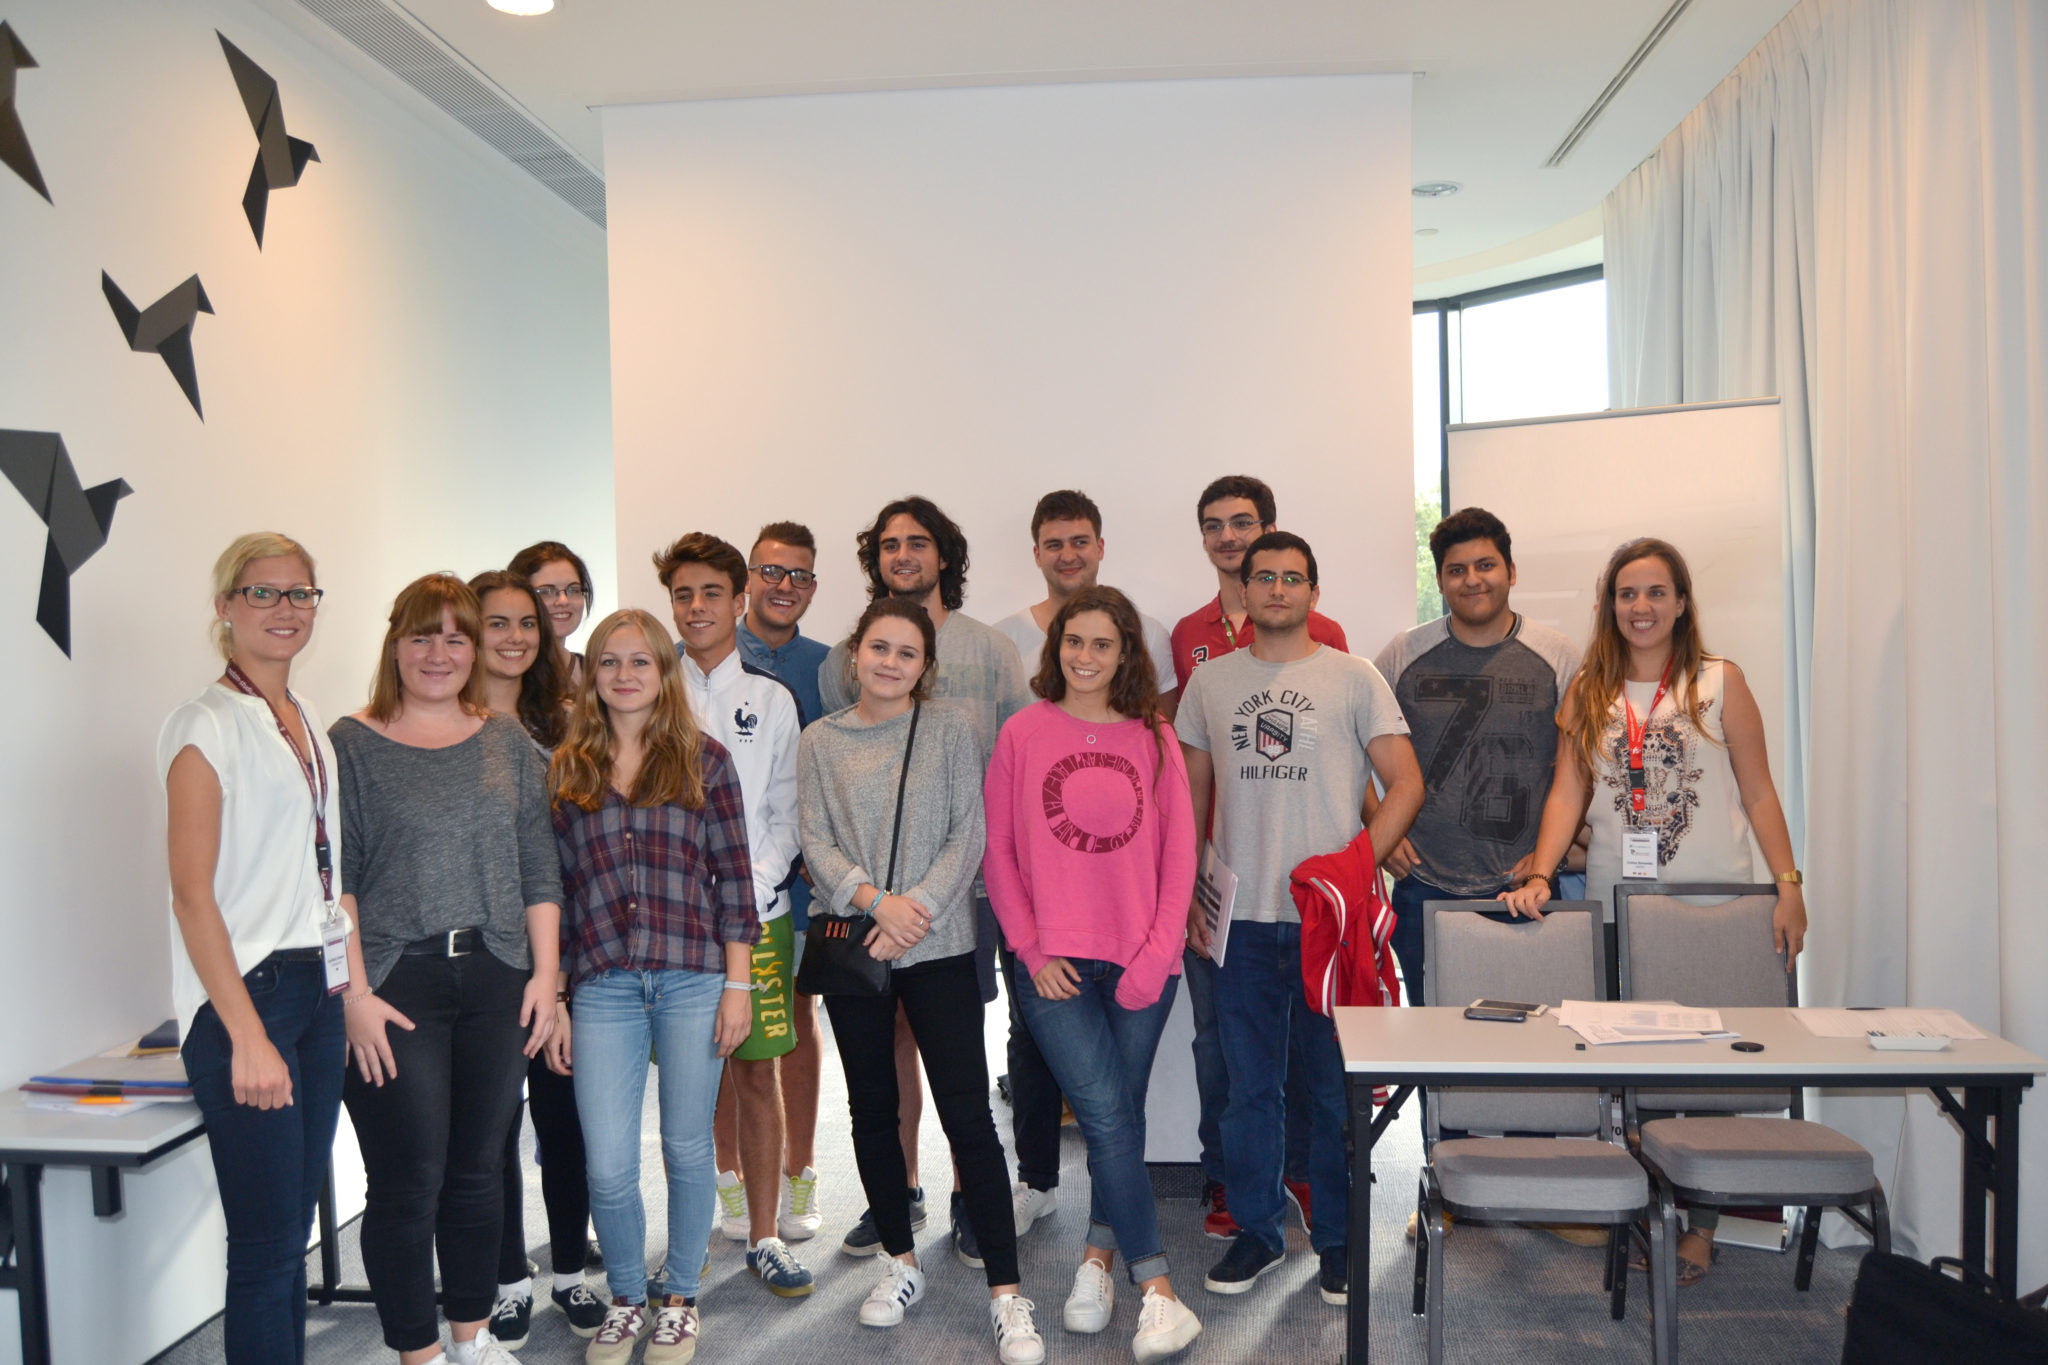 Bialystok students in a group picture